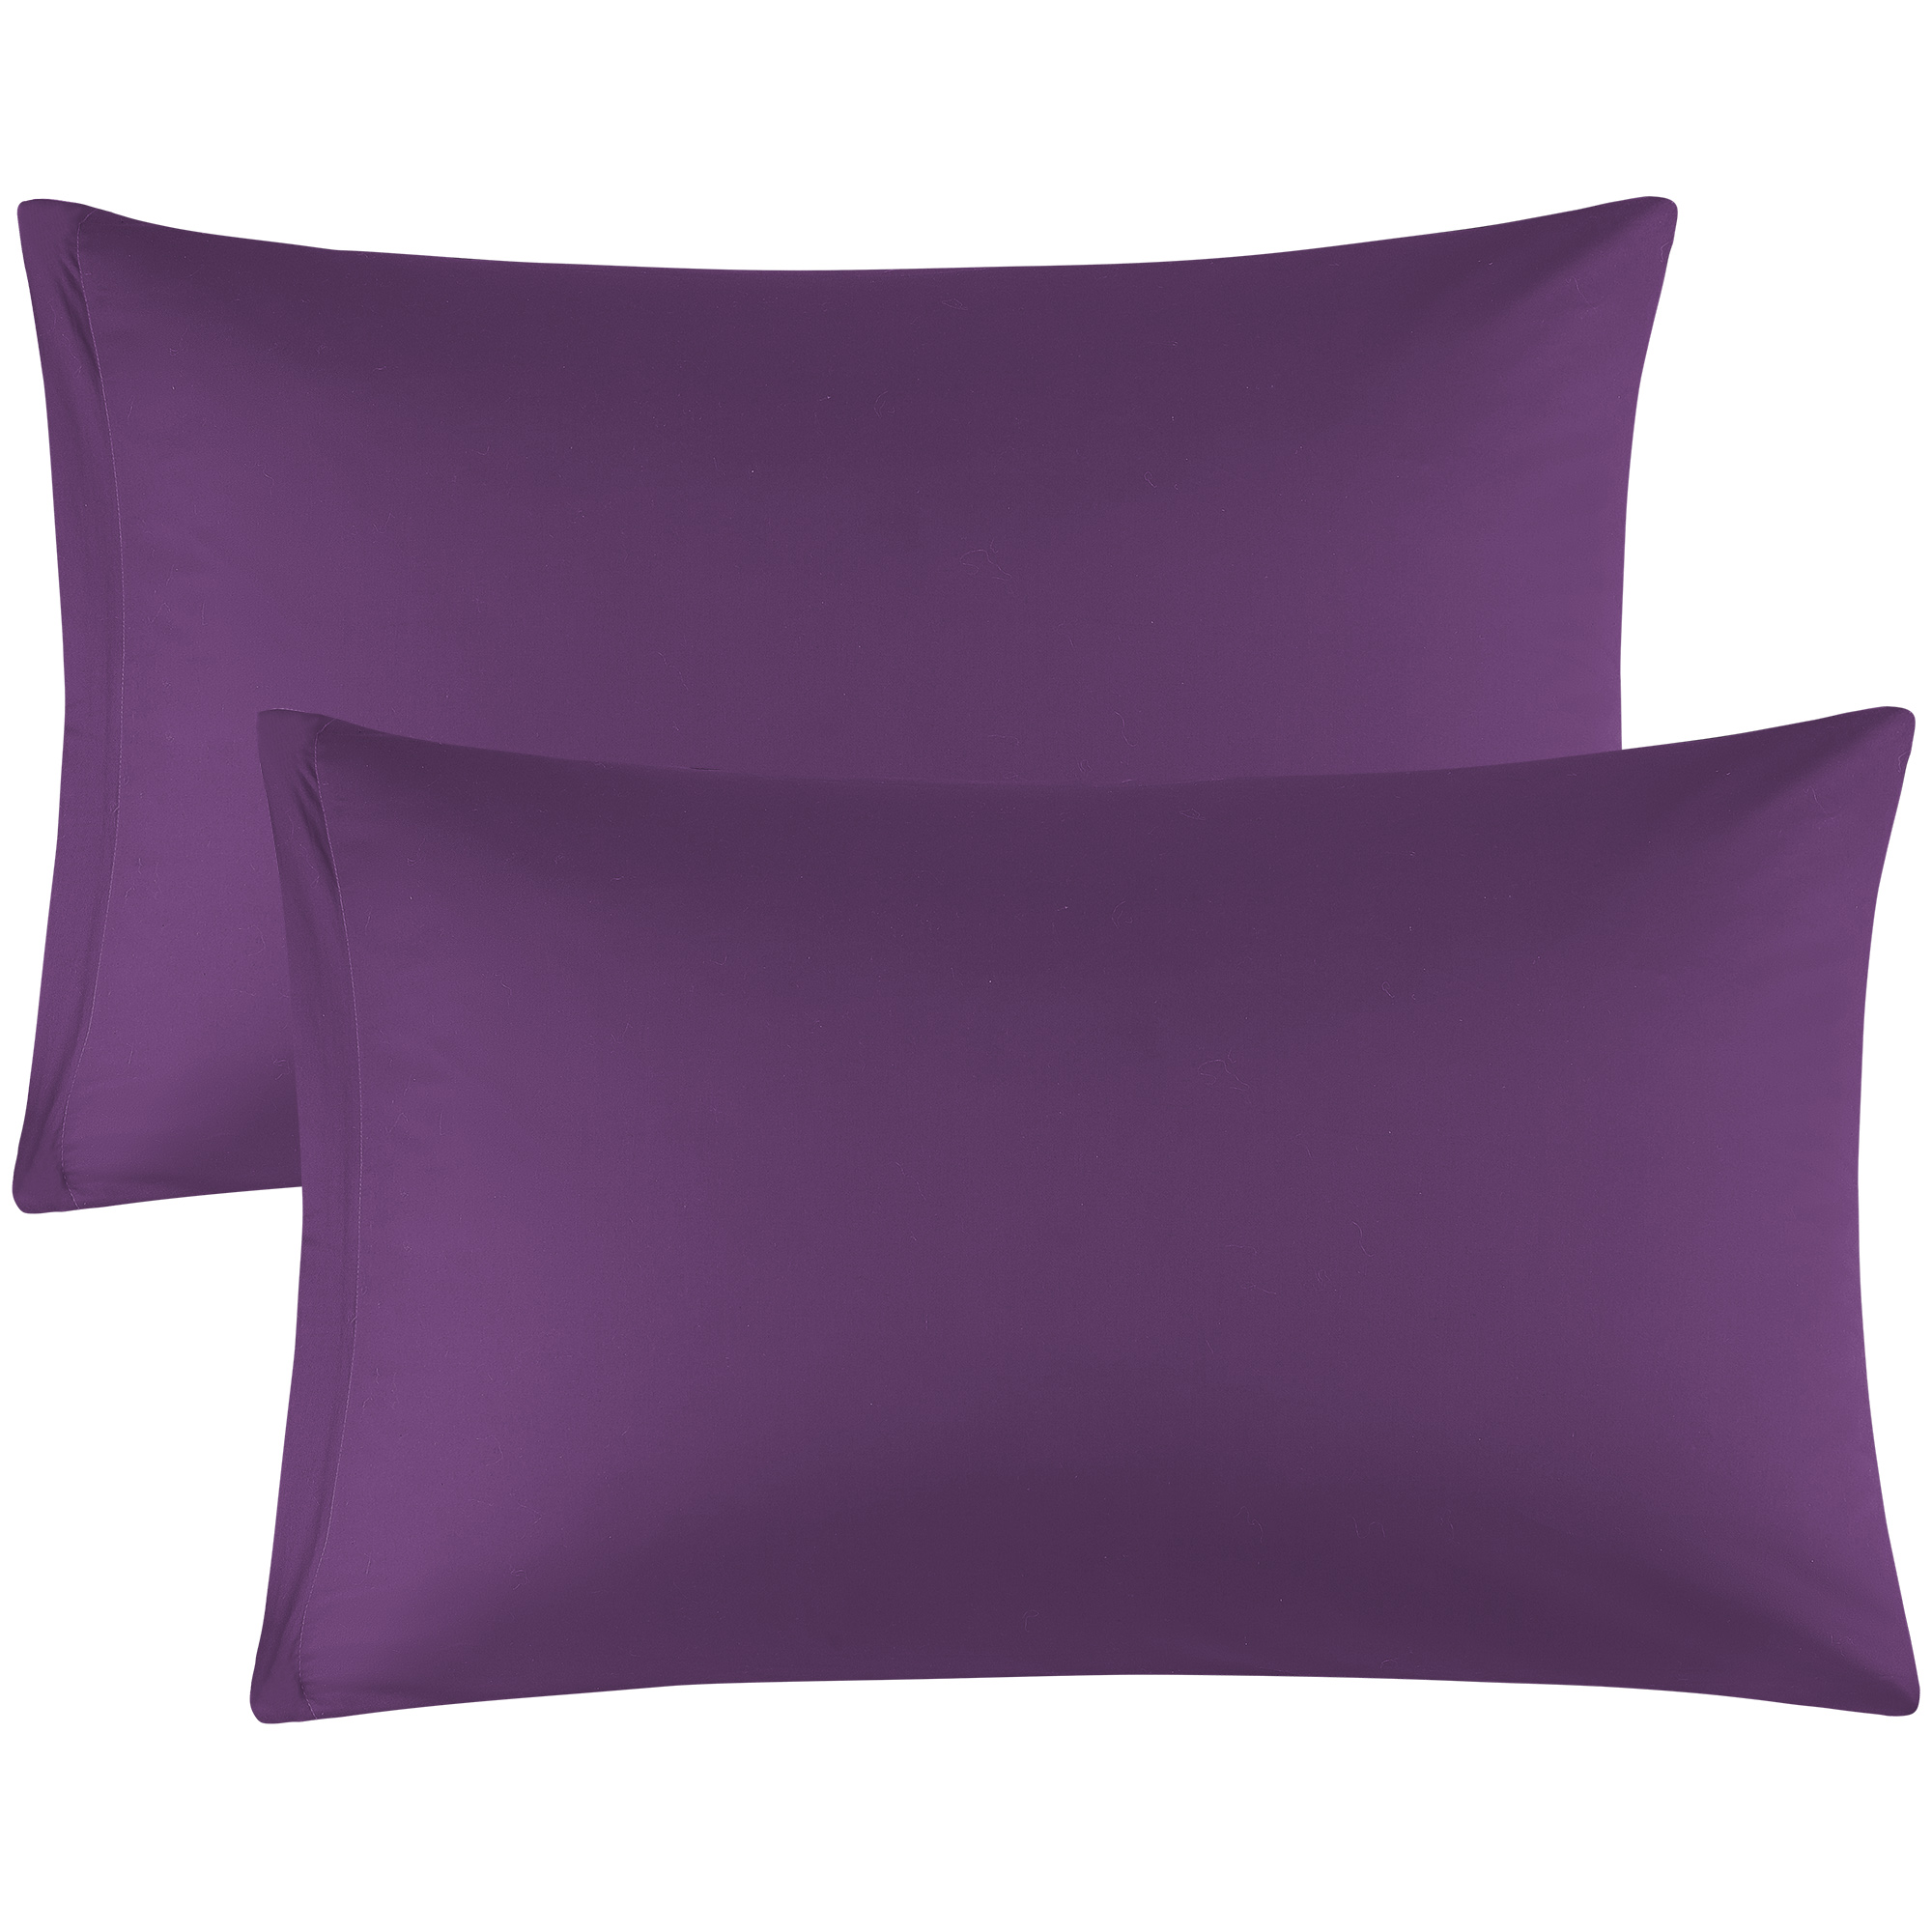 Zippered Pillowcases Covers Egyptian Cotton 2-Pack (20 x 26 Inch, Dark Purple)